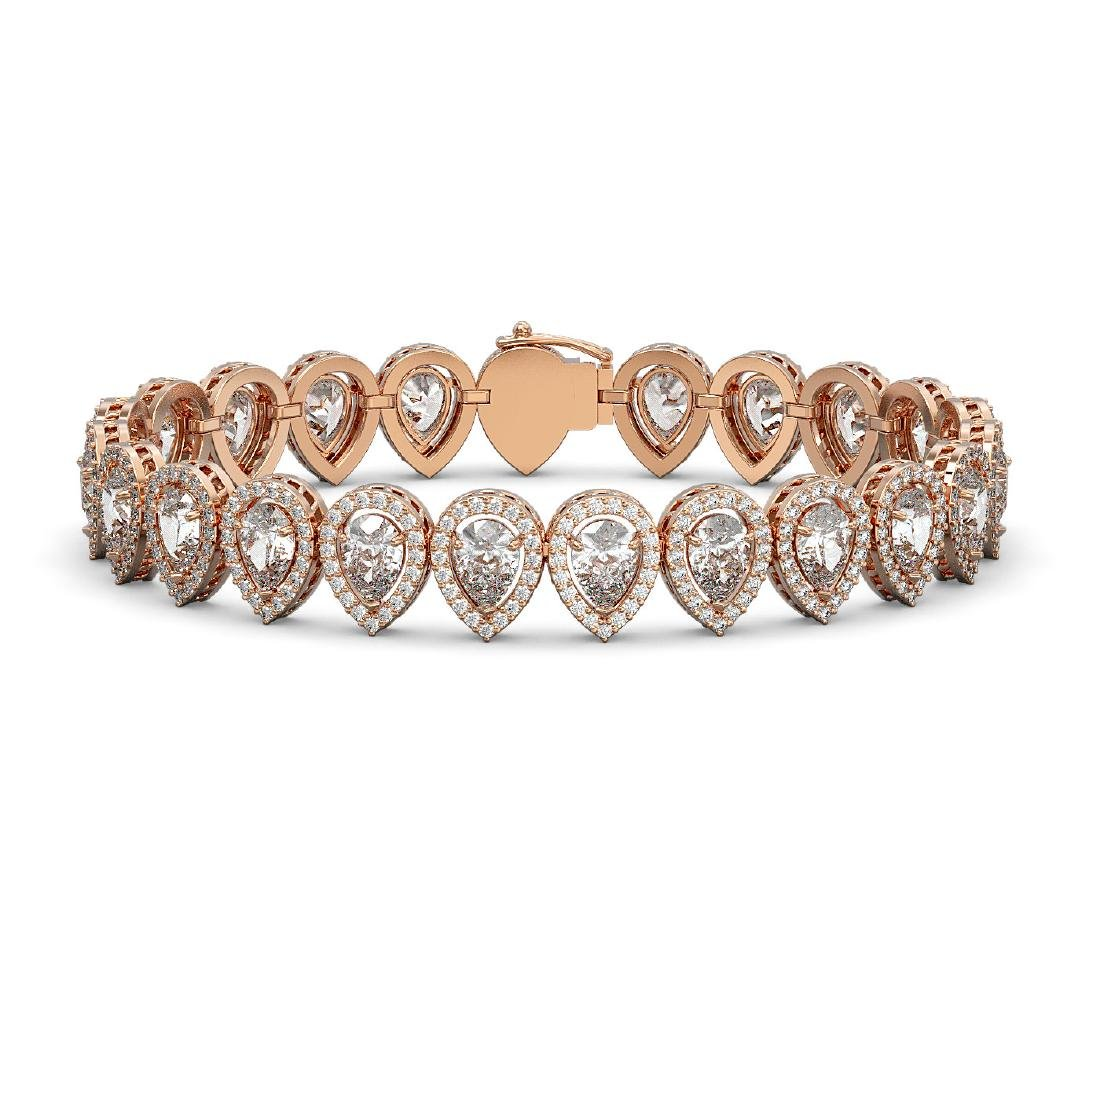 15.85 CTW Pear Diamond Designer Bracelet 18K Rose Gold